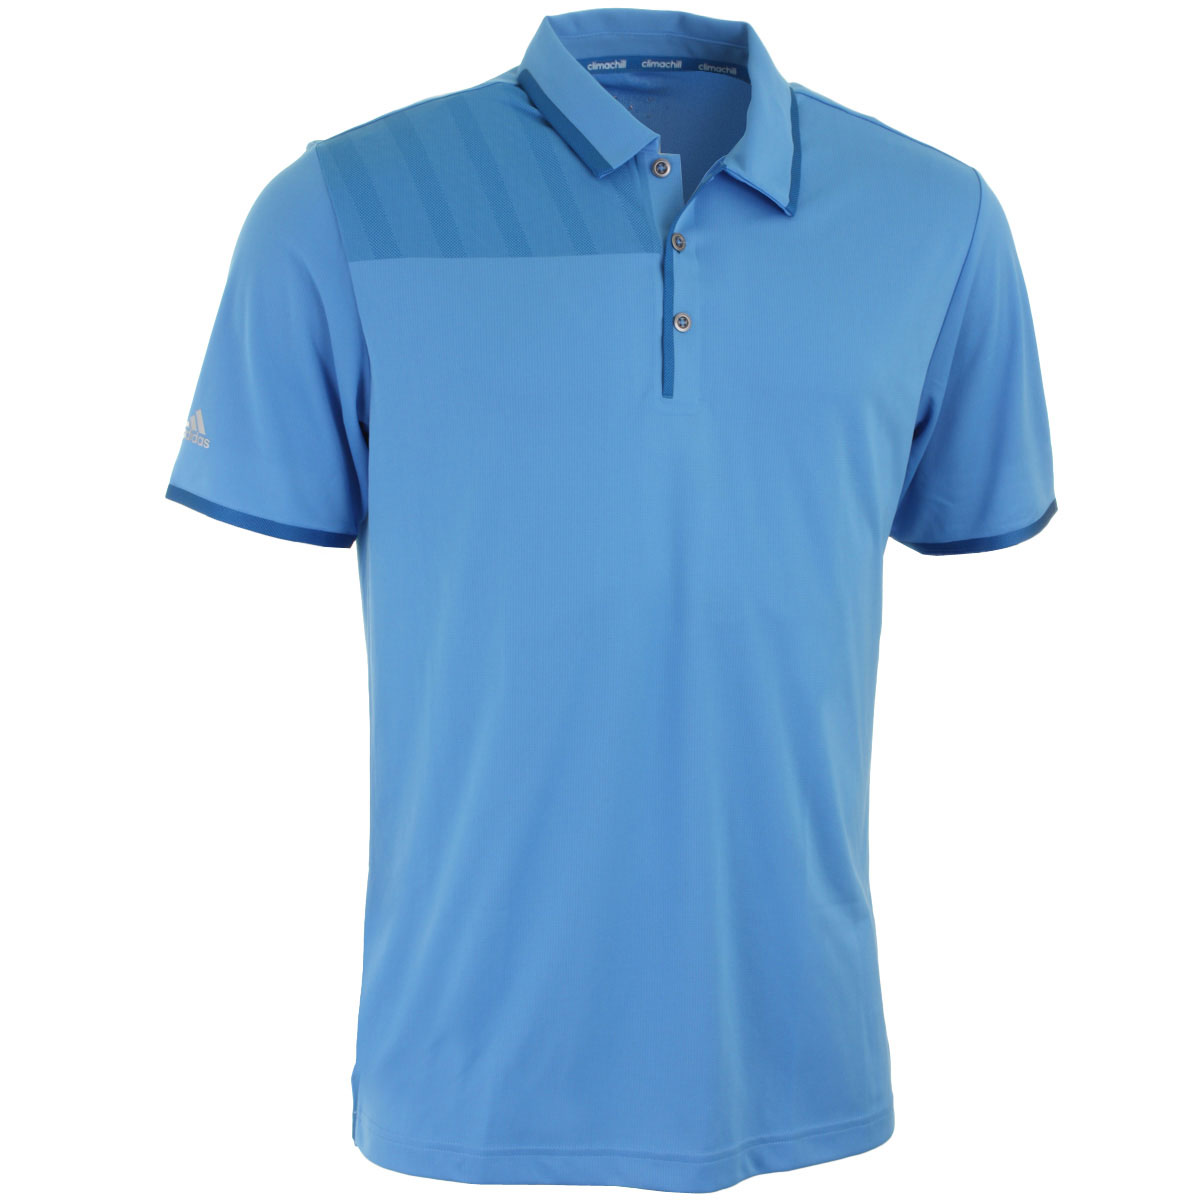 Adidas golf mens climachill bonded print polo shirt for Polo shirts for printing